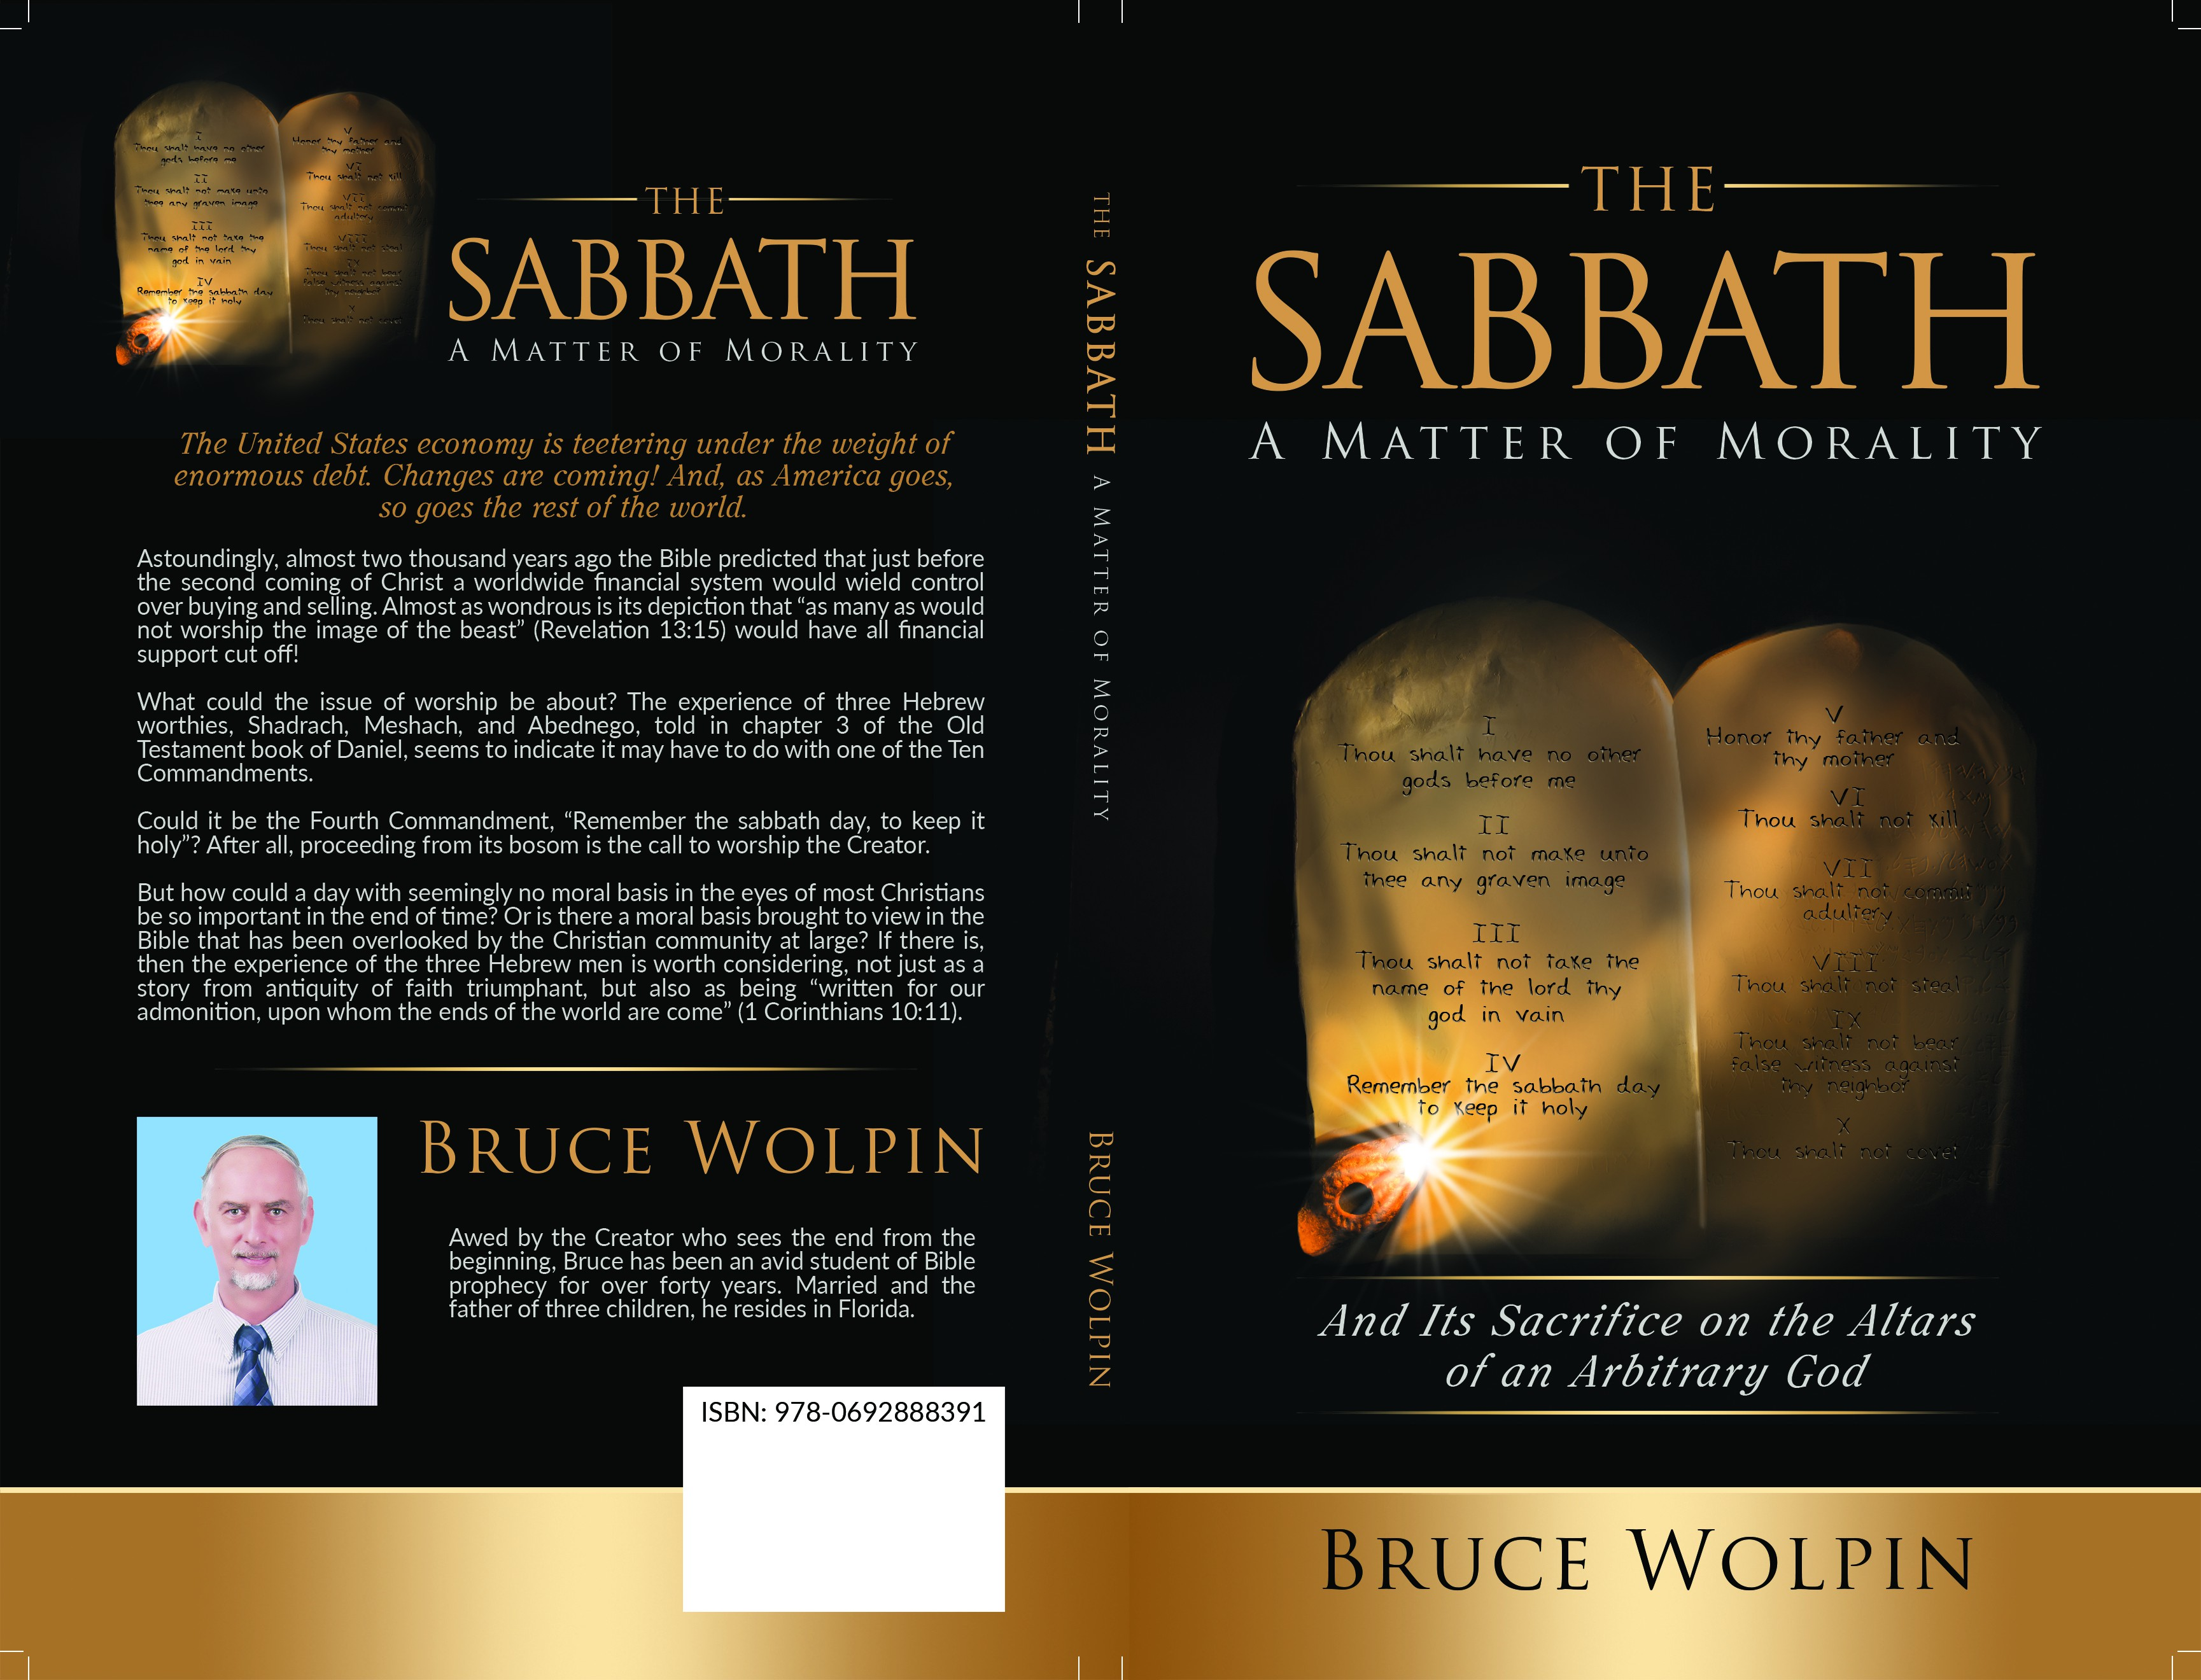 Design a book cover depicting Moses receiving Ten Commandments, then offered on altar of sacrifice